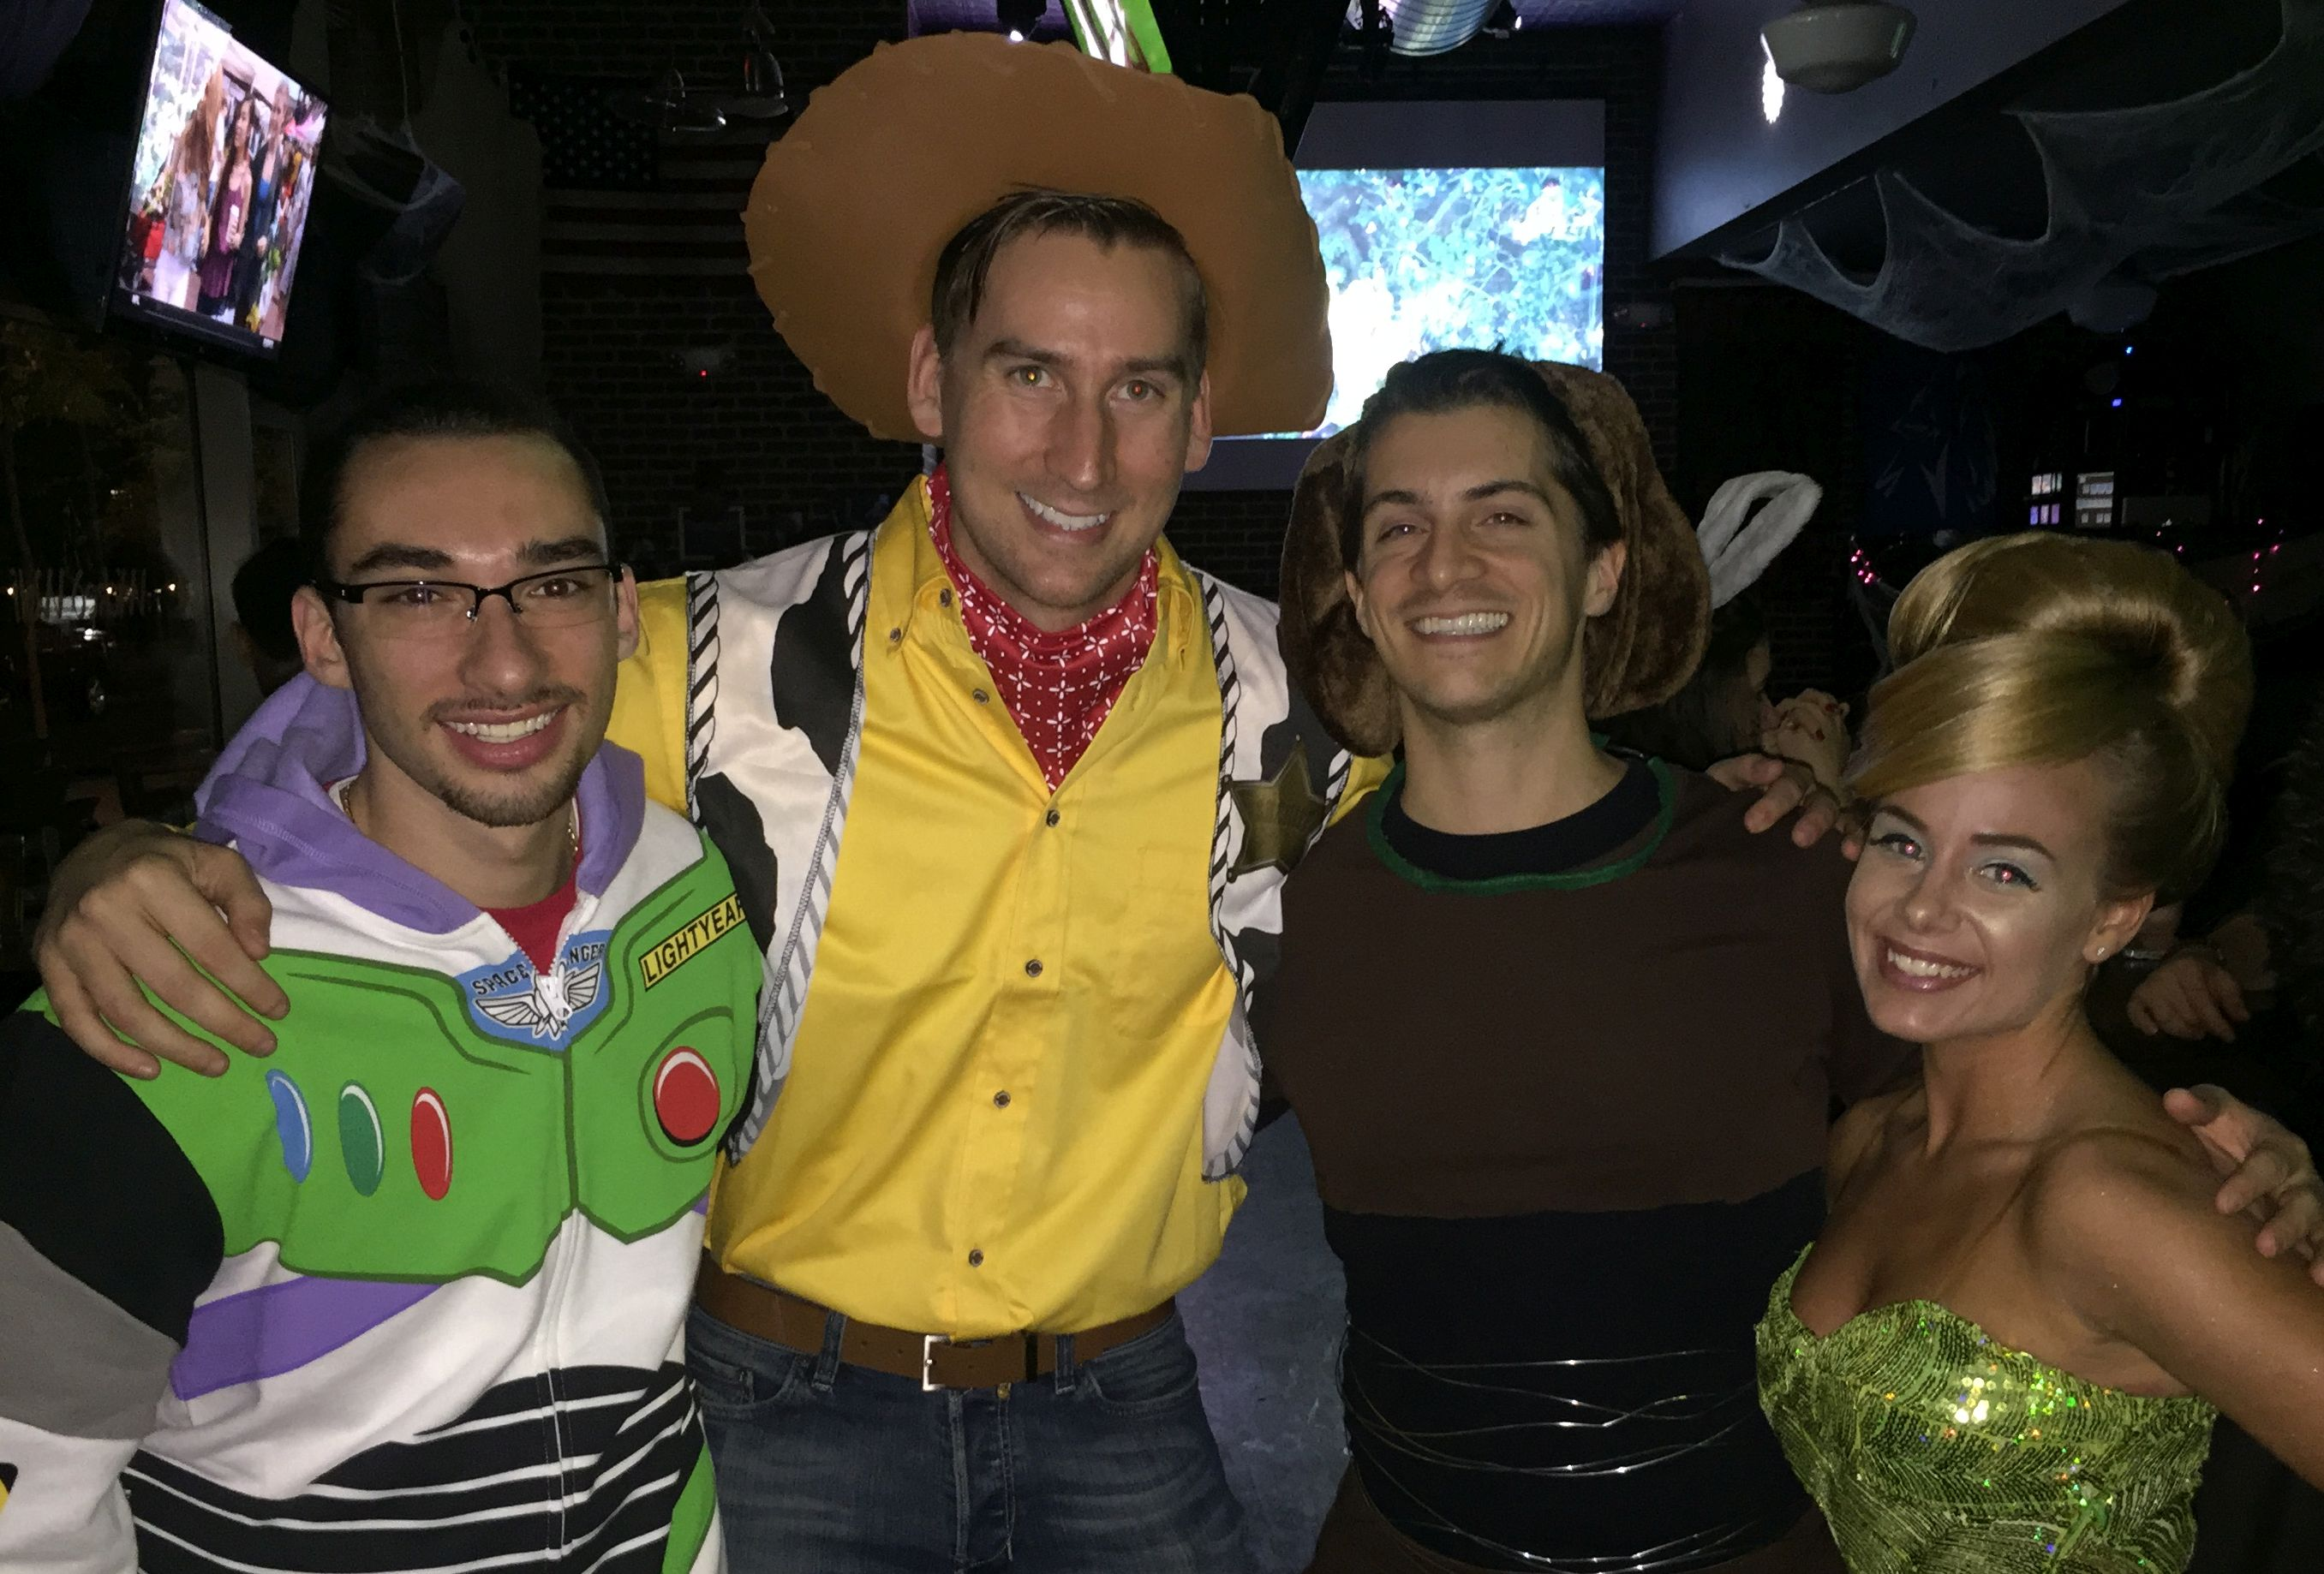 buzz, woody, slinky, tinkerbell at a disney themed joint bachelor and bachelorette party @disneybride2be